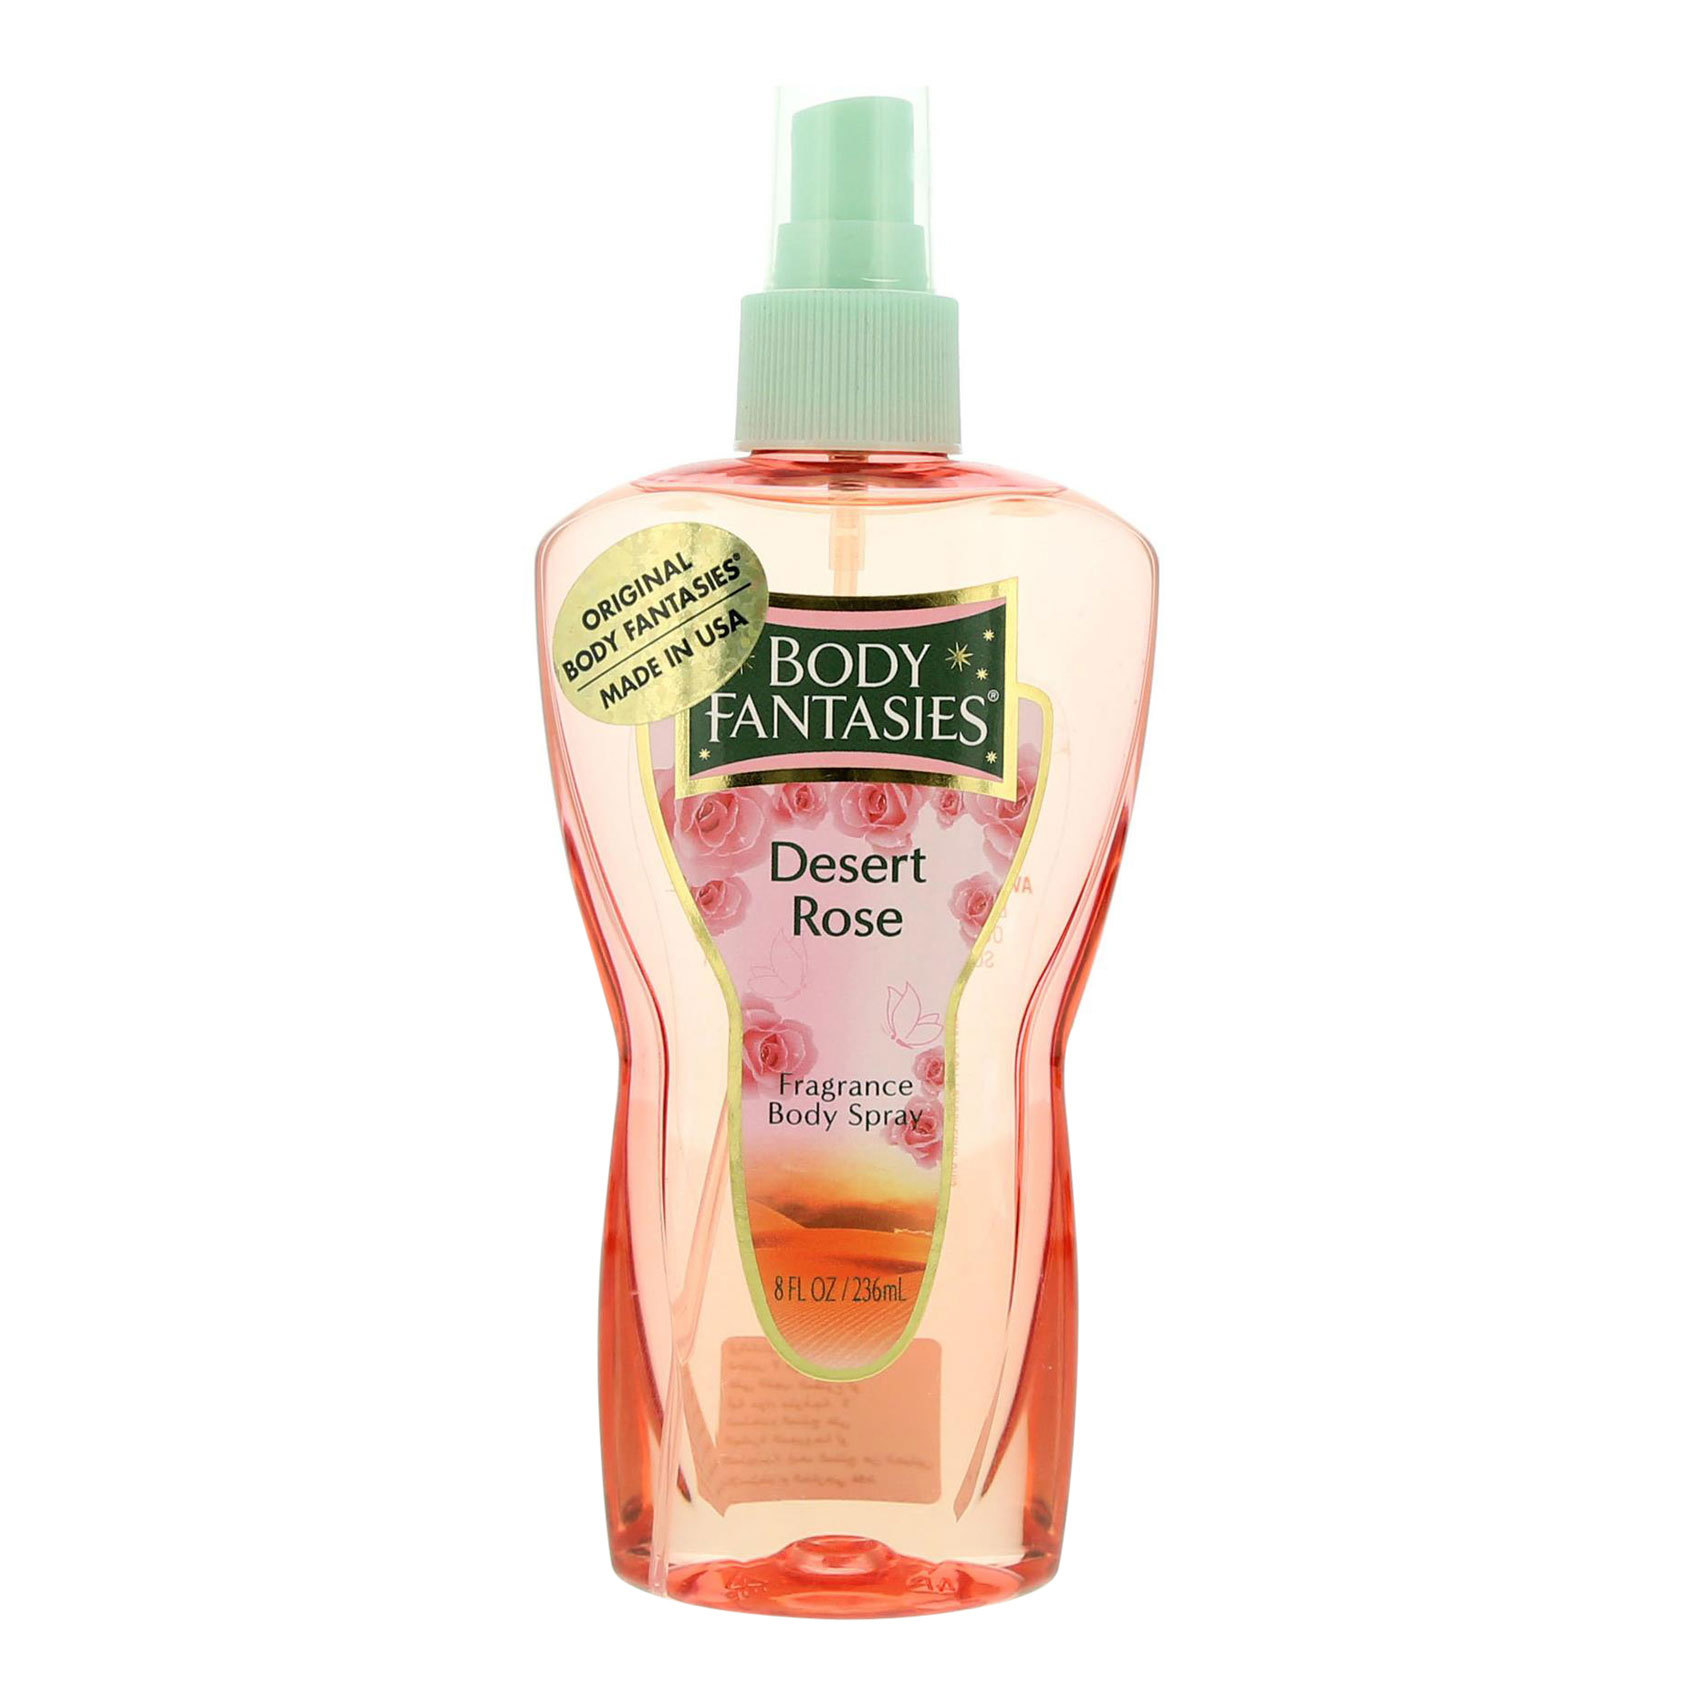 BODY FANTASIES DESERT ROSE BS 8OZ